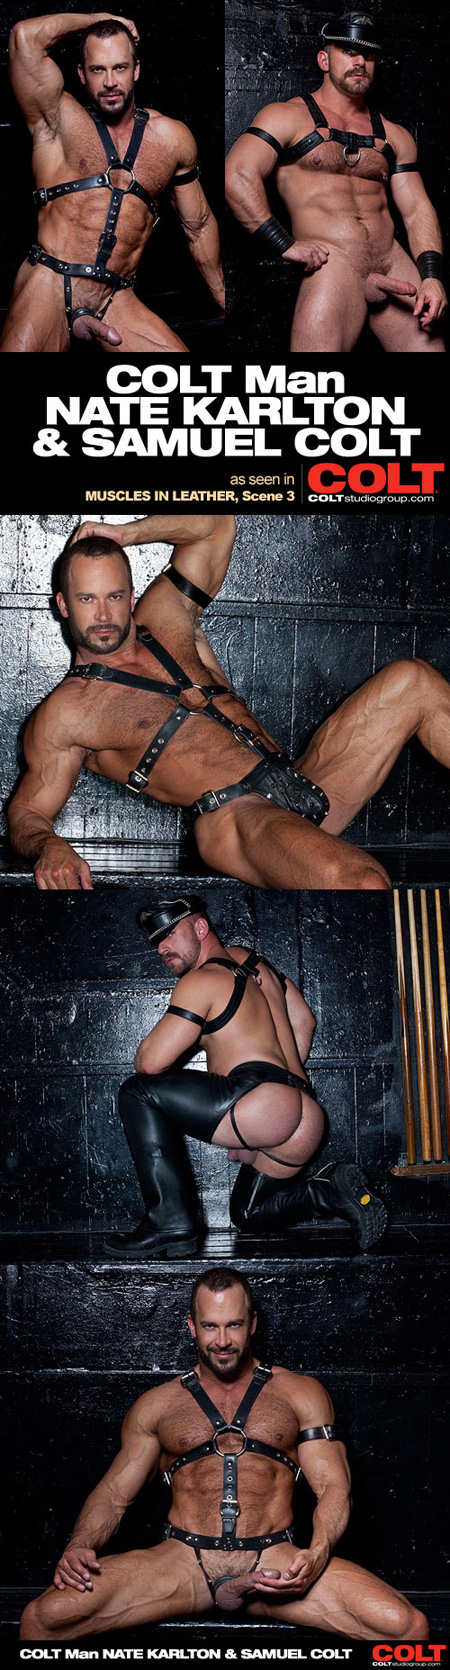 Samuel Colt steals the scene as an assertive bottom in black leather chaps and a harness.